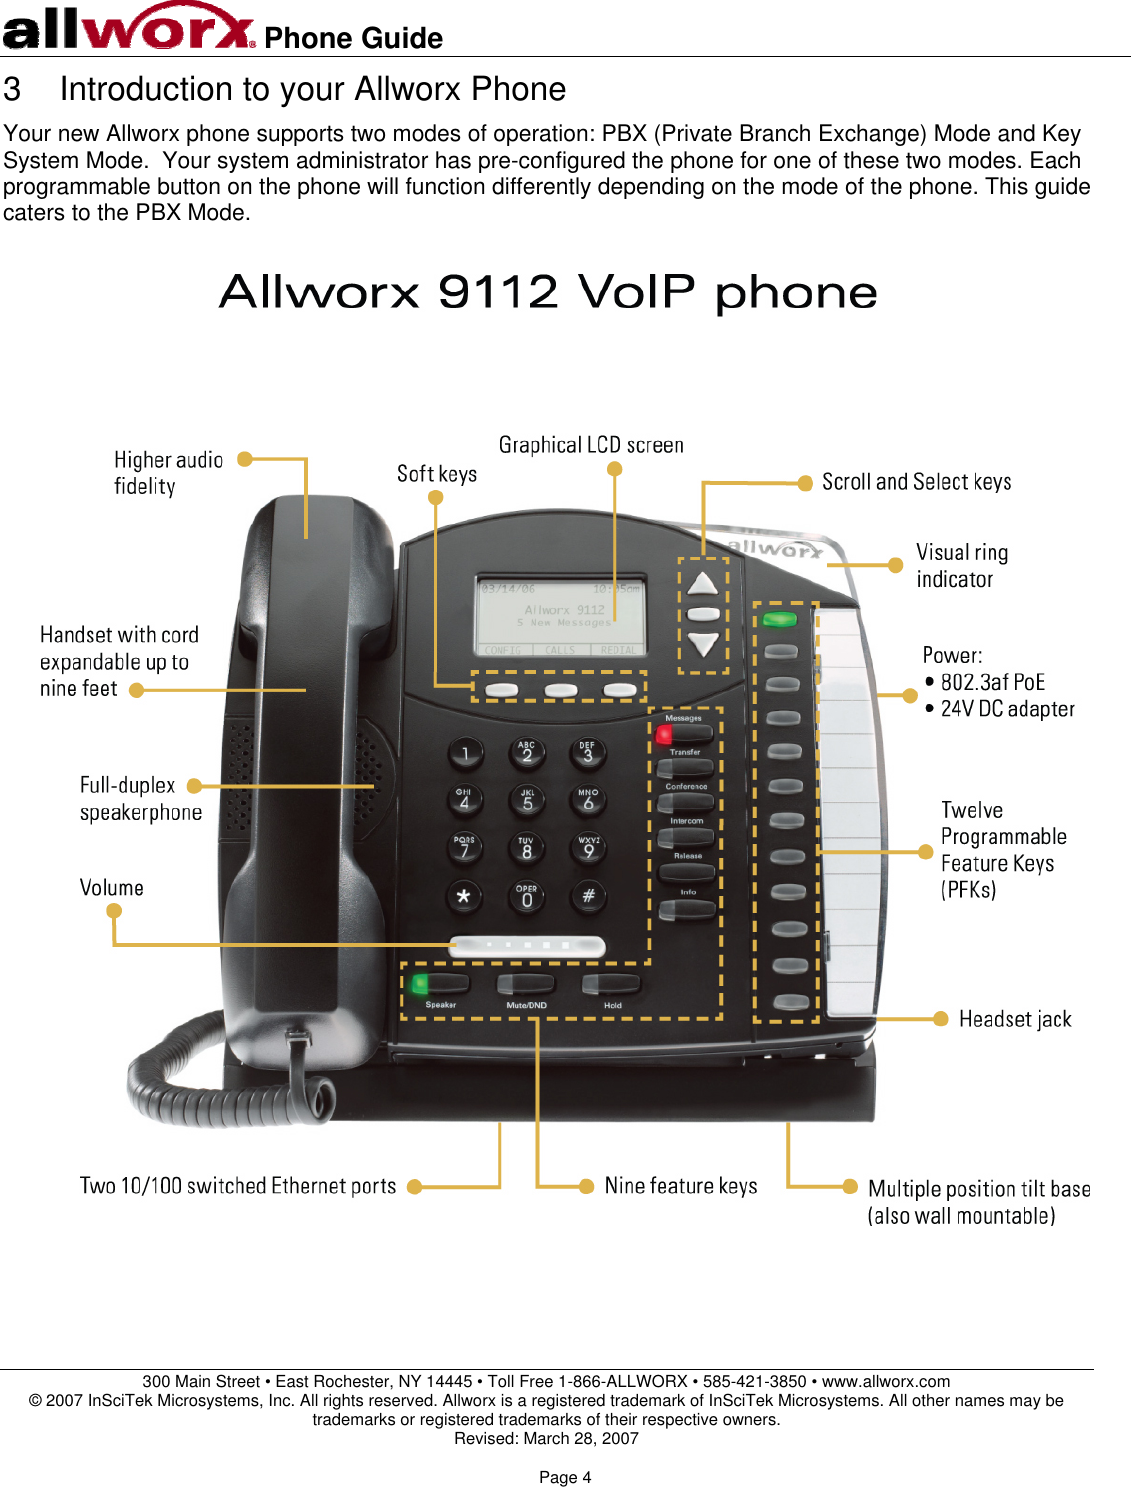 Allworx Dhcp Options